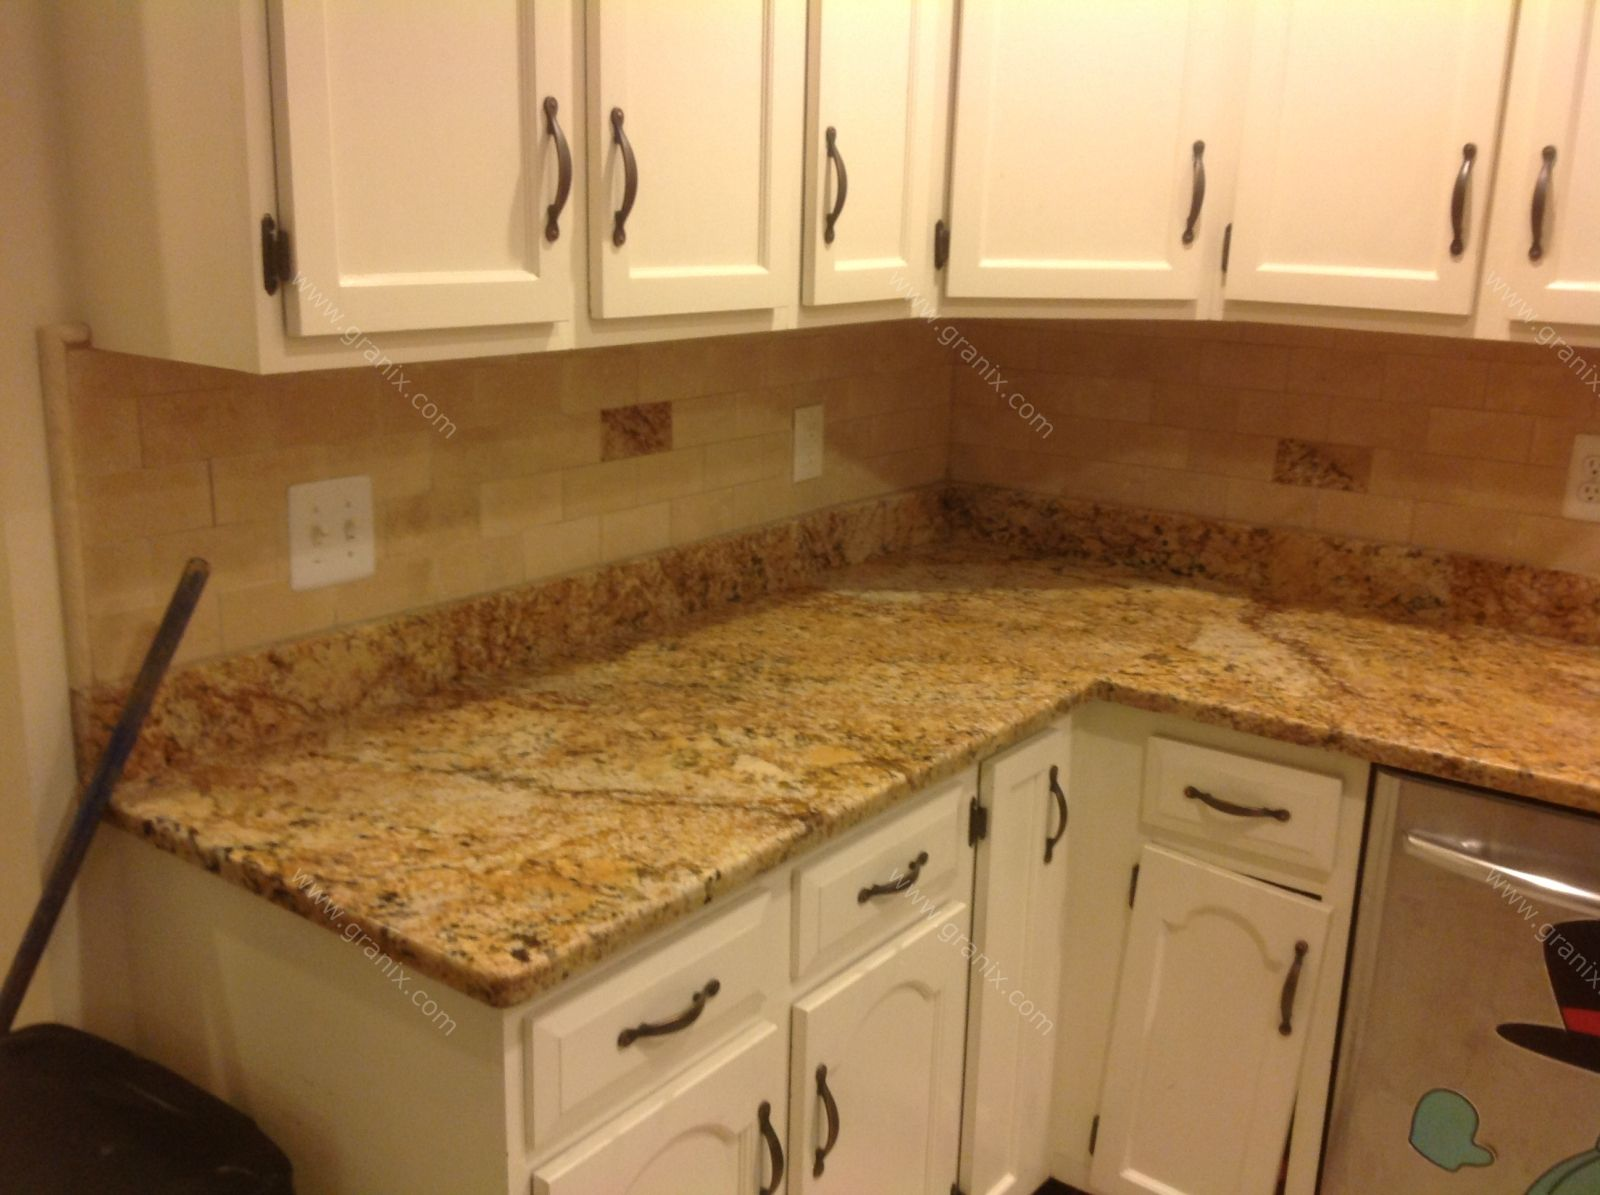 Granite countertops most popular favorite - Backsplash Ideas For Granite Countertops Leave A Reply Cancel Reply